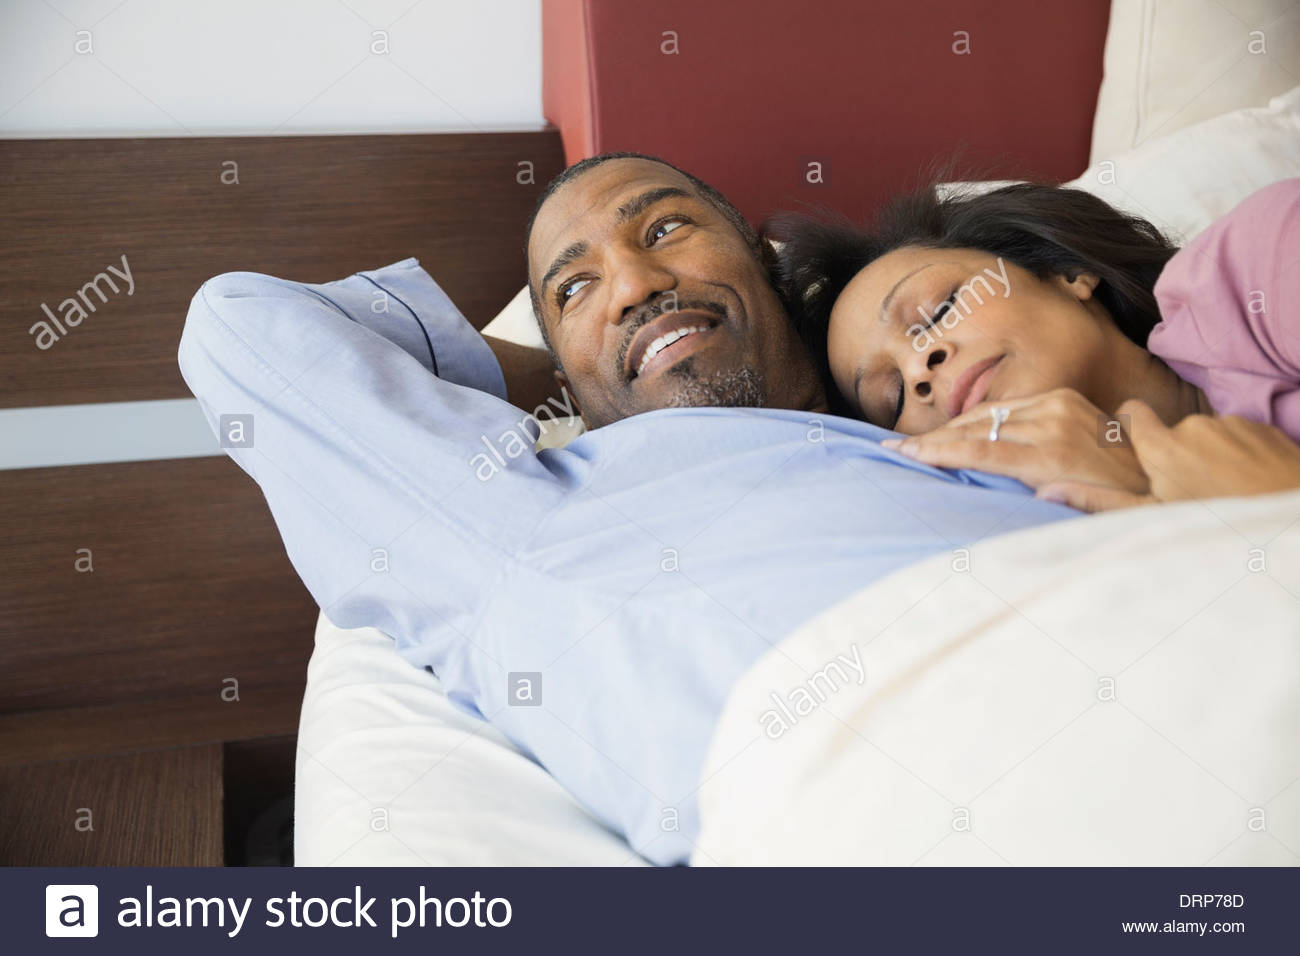 Couple resting in bed - Stock Image